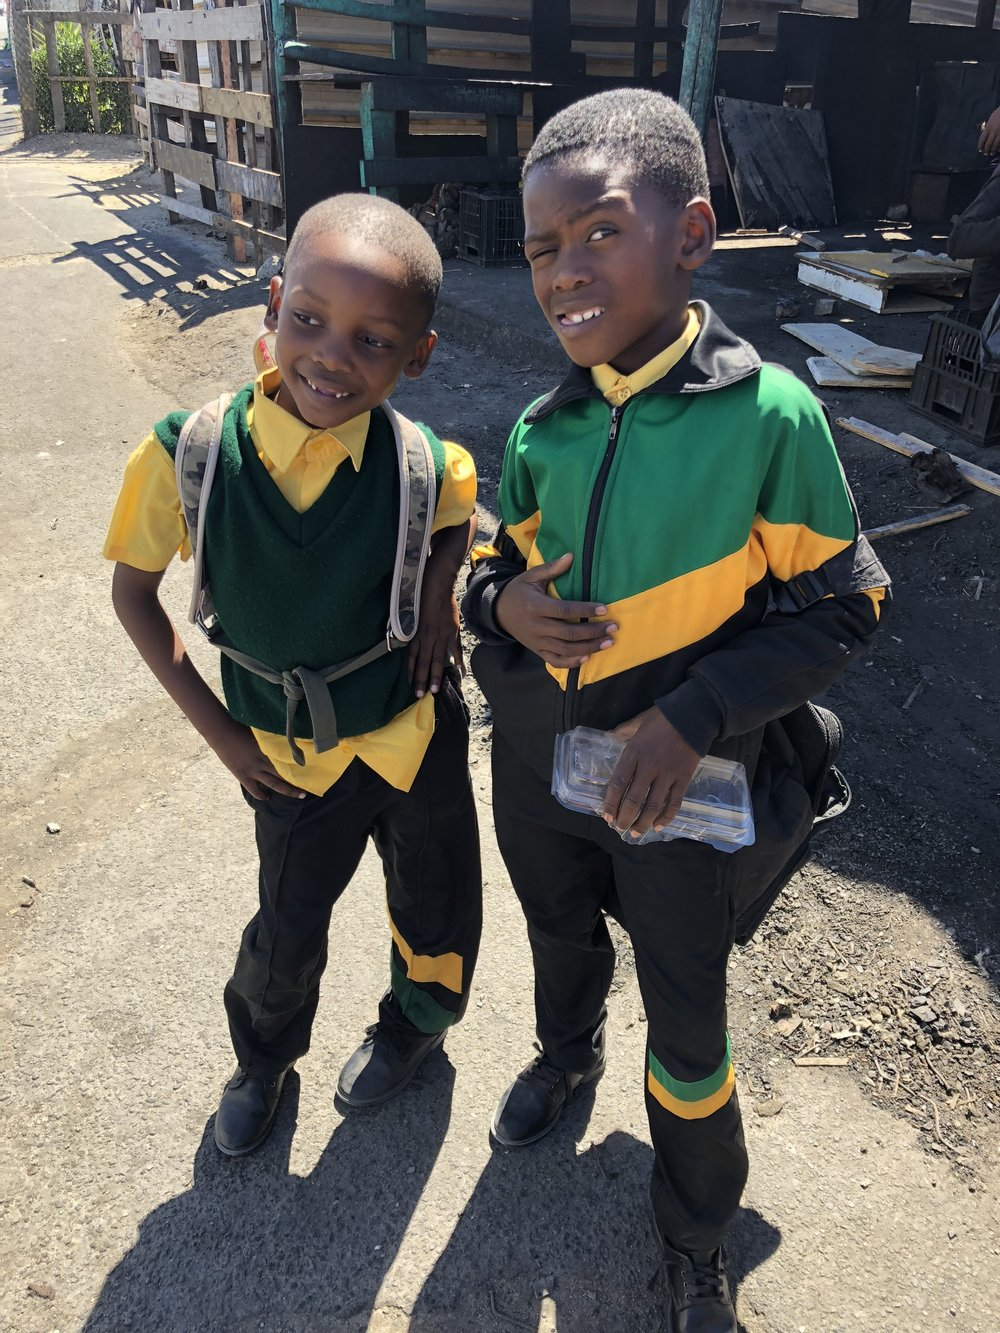 Khayelitsha township boys on their way home from school.